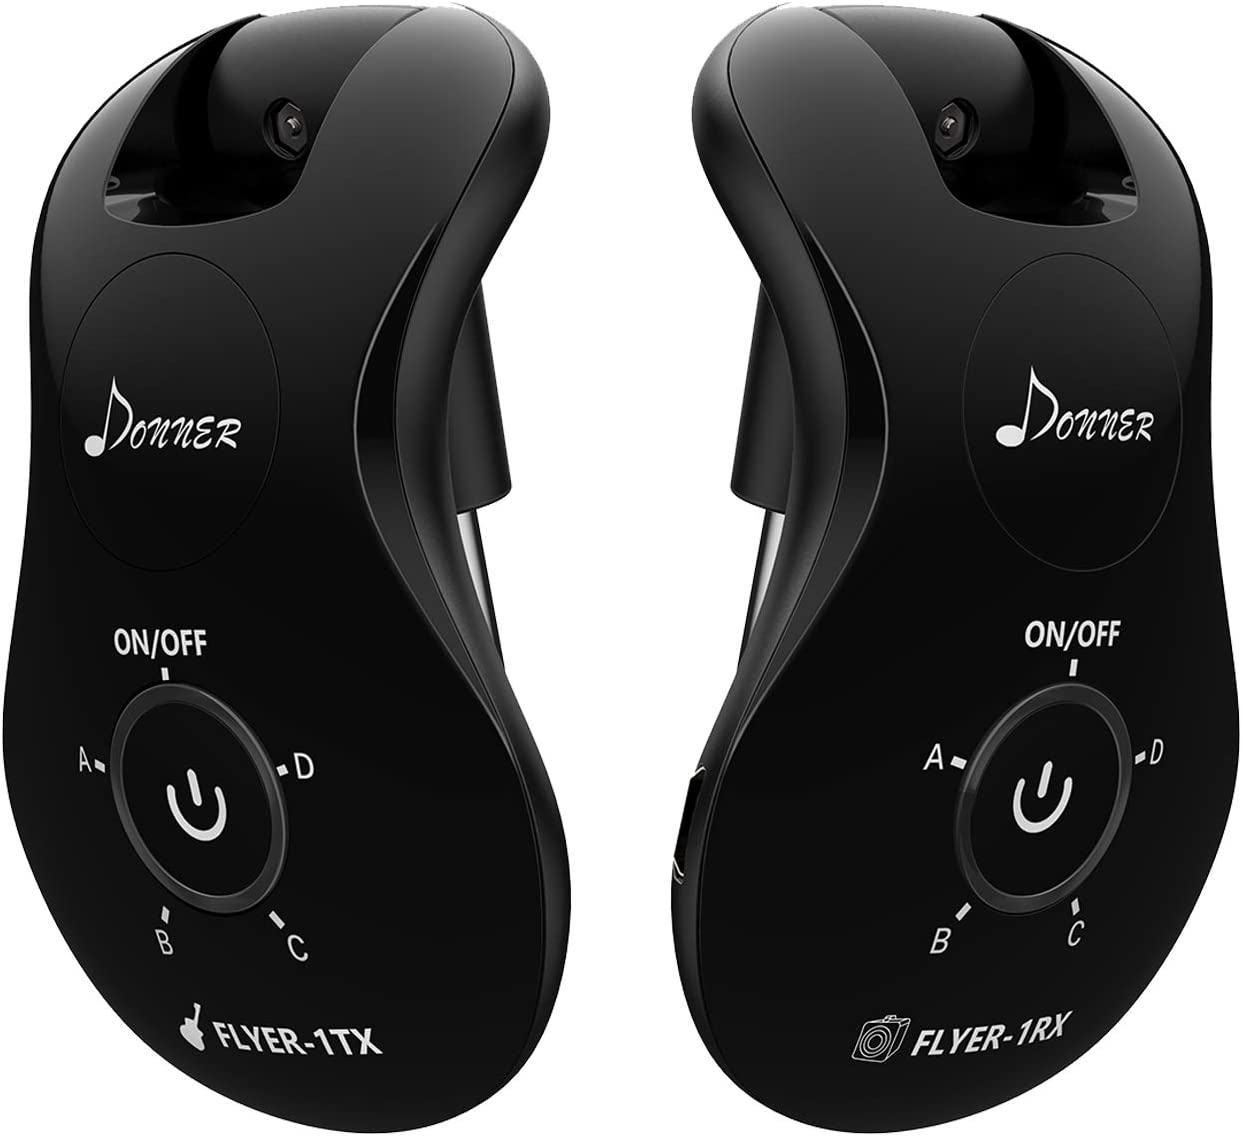 Free Amazon Promo Code 2020 for FLYER-1 Guitar Wireless System